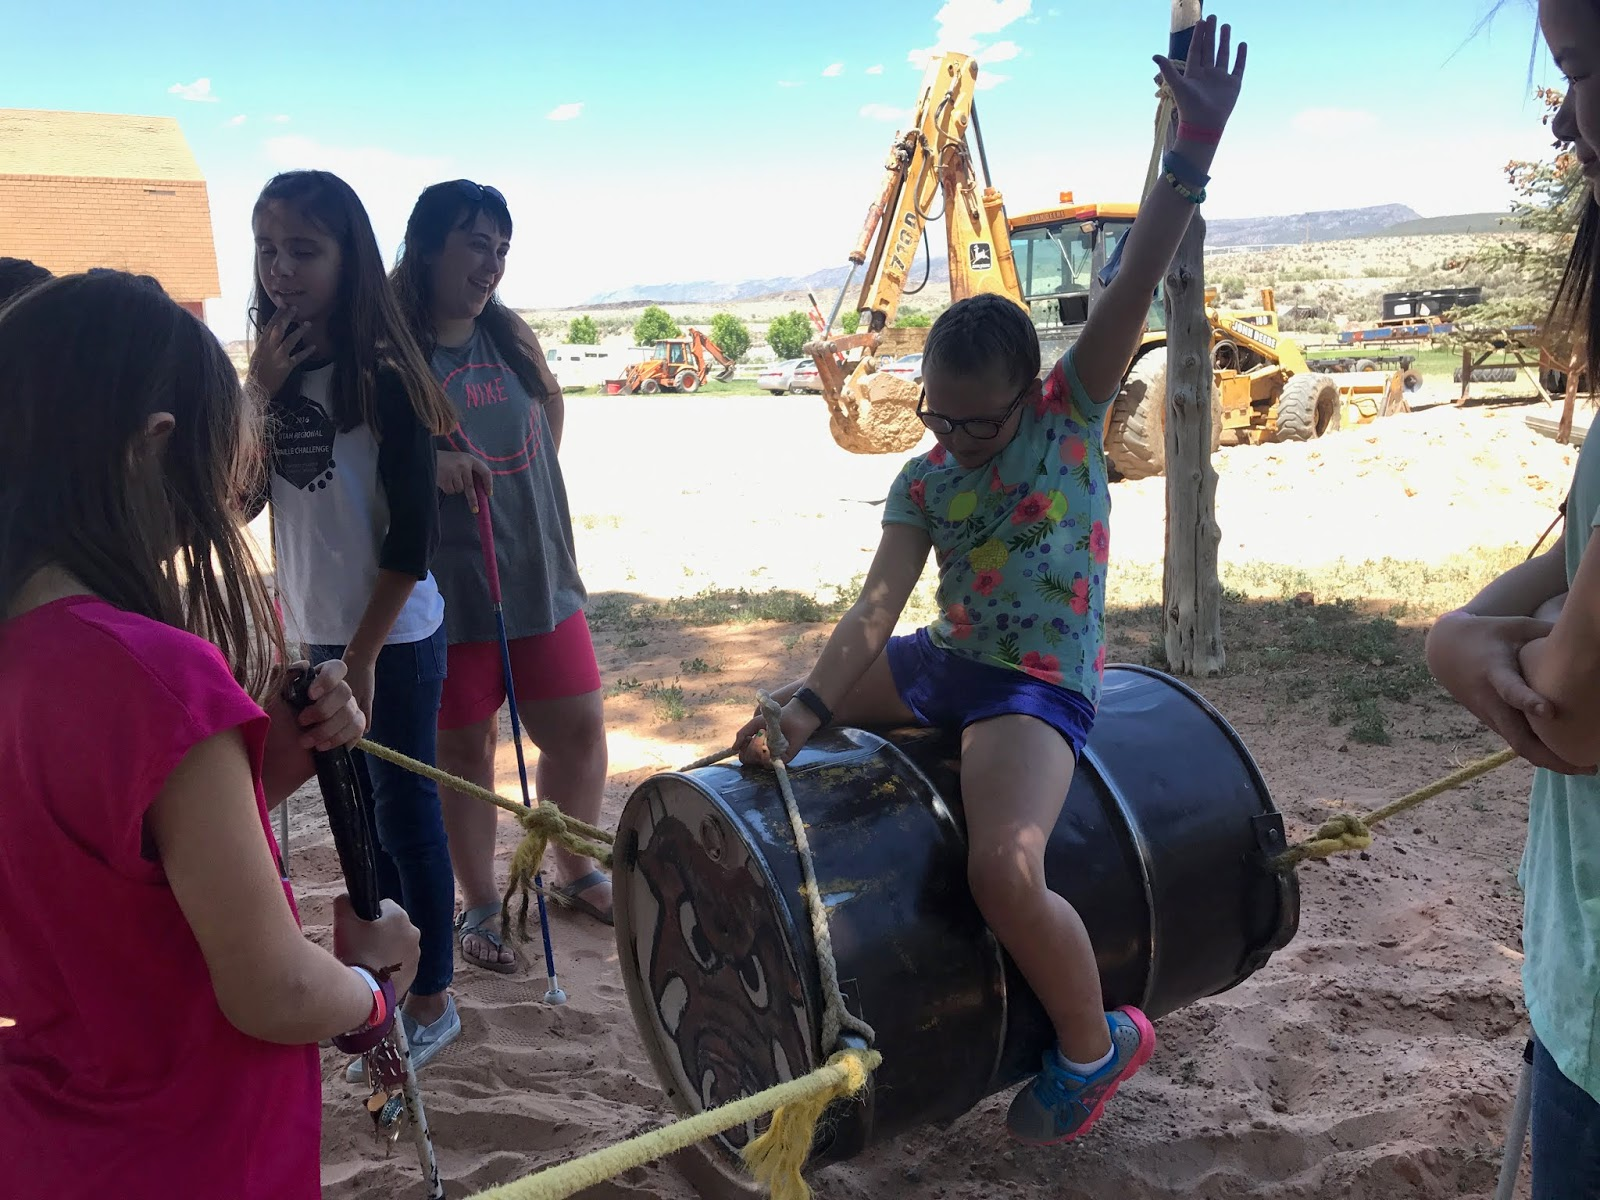 a female student is on a barrel to simulate riding a bull while other students pull attached cords at the corners of the barrel for the simulation